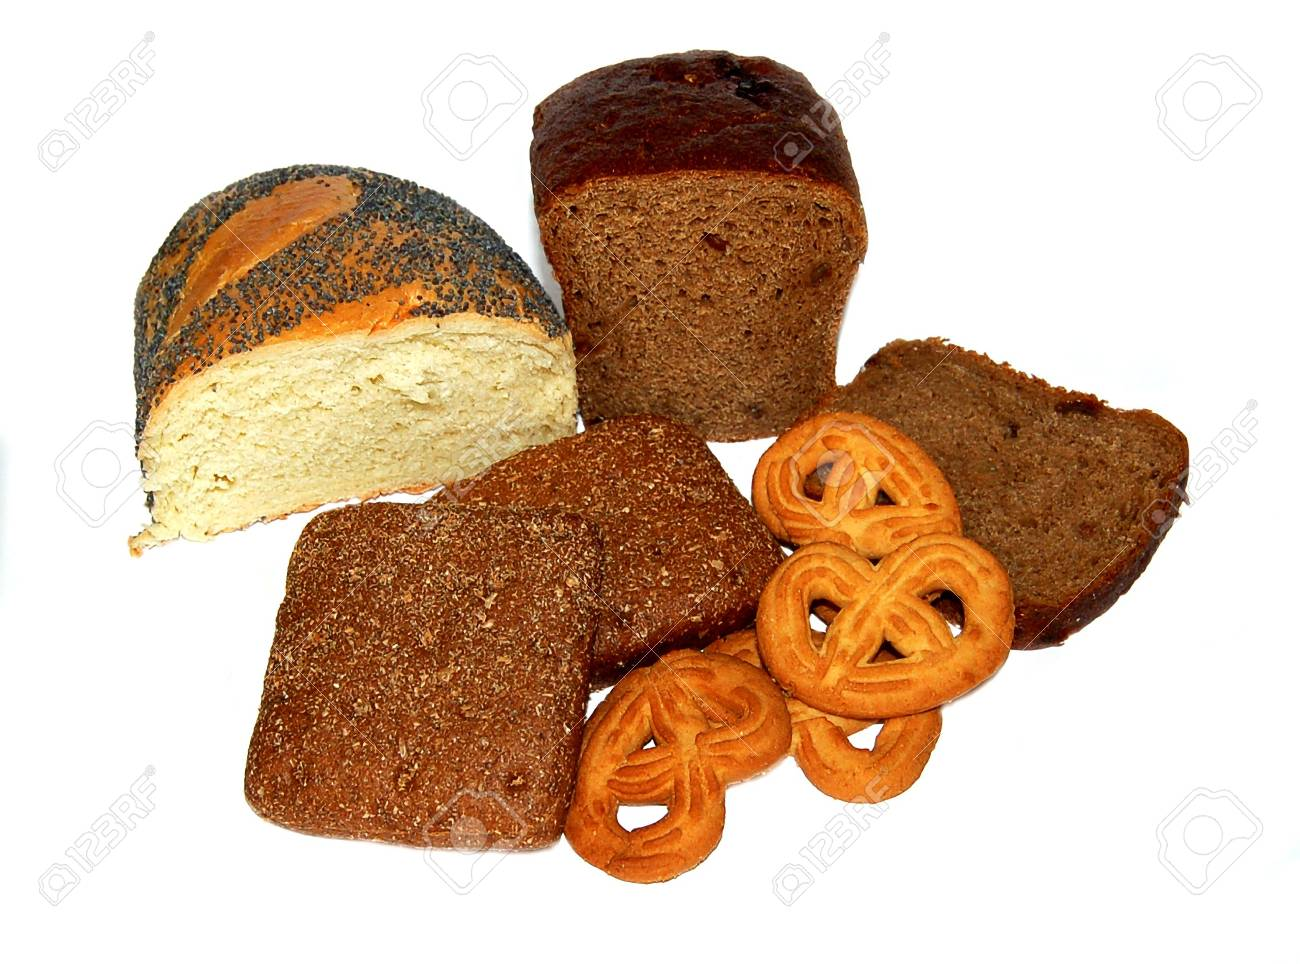 different bread, buns, cookies on a white background Stock Photo - 7267553